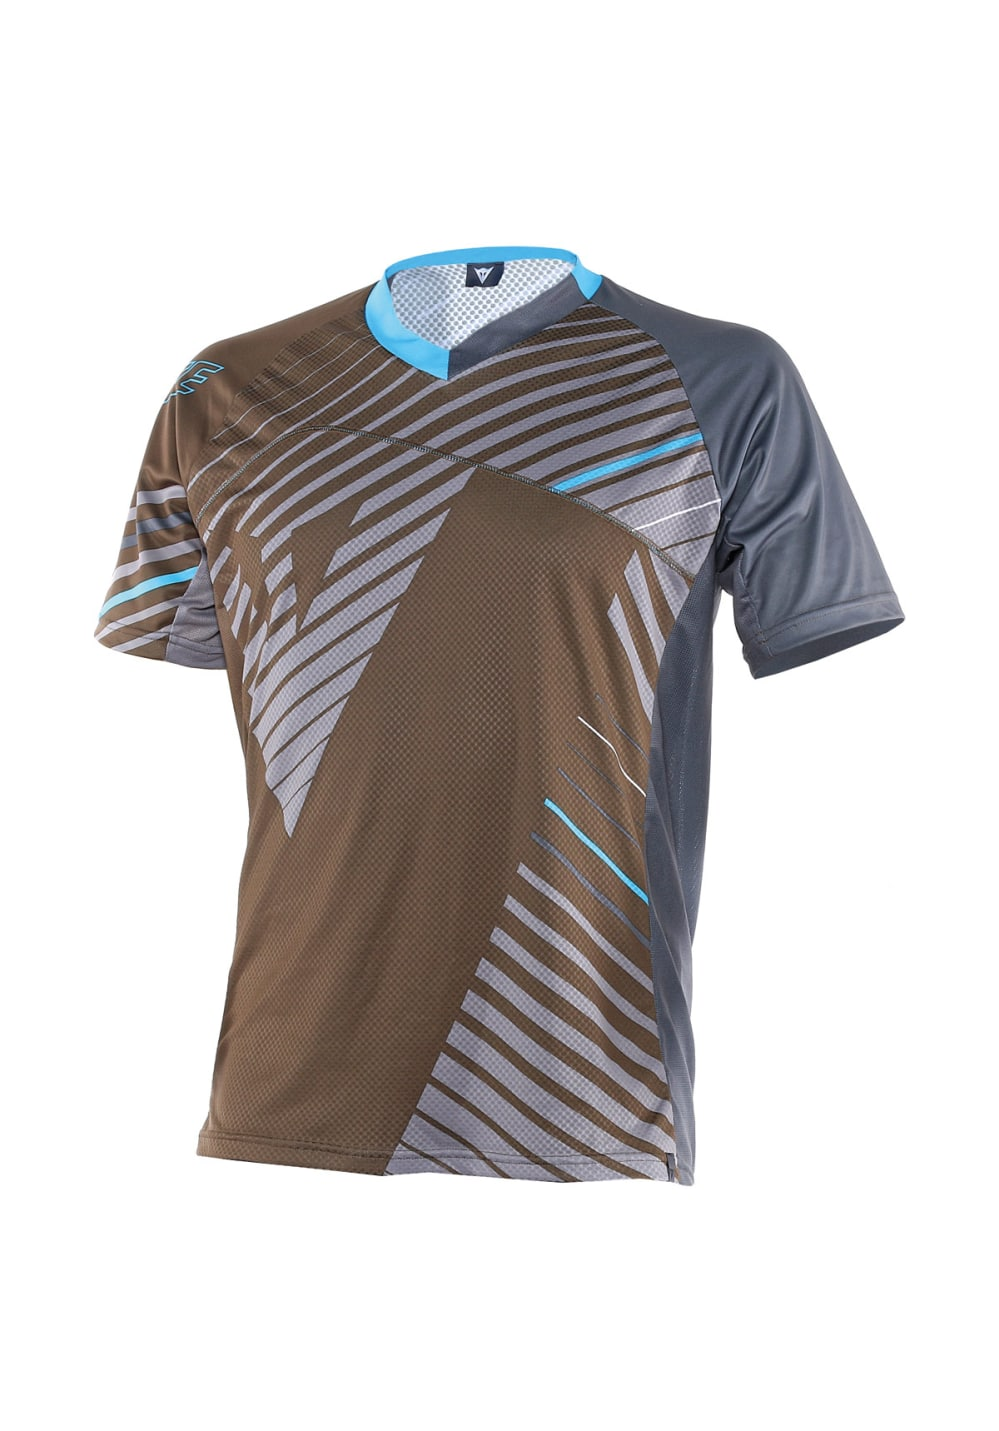 Dainese Flow Tech Jersesy Short Sleeve Radtrikots - Grau, Gr. L